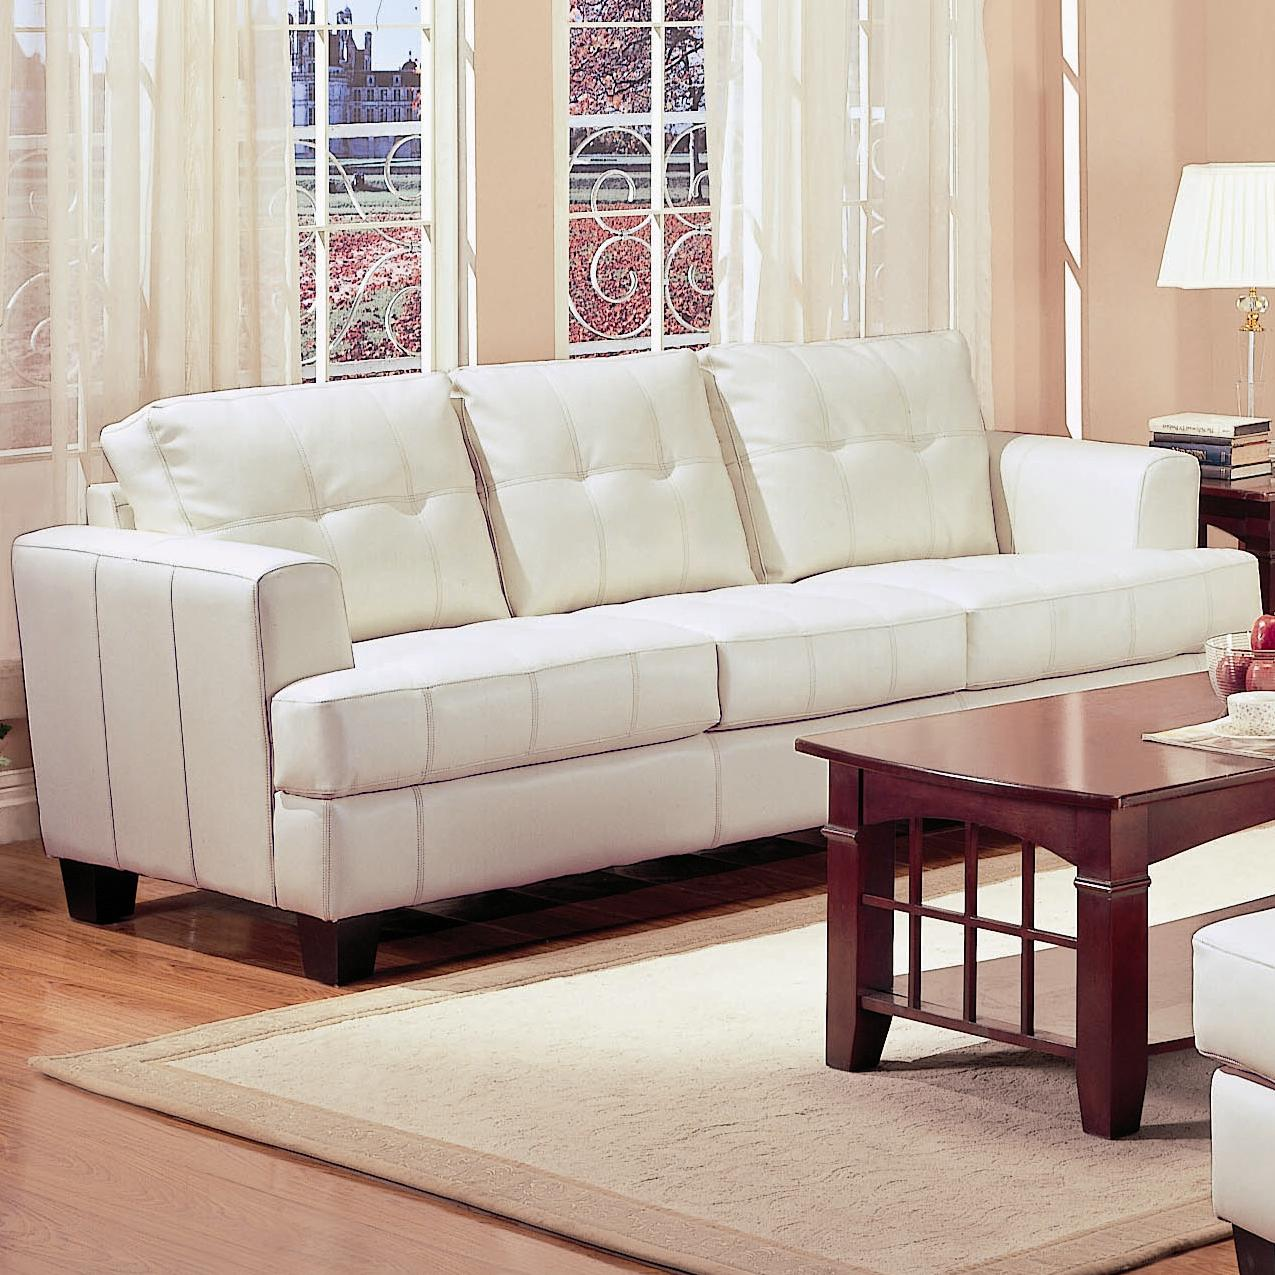 Leather Couch: Steal-A-Sofa Furniture Outlet Los